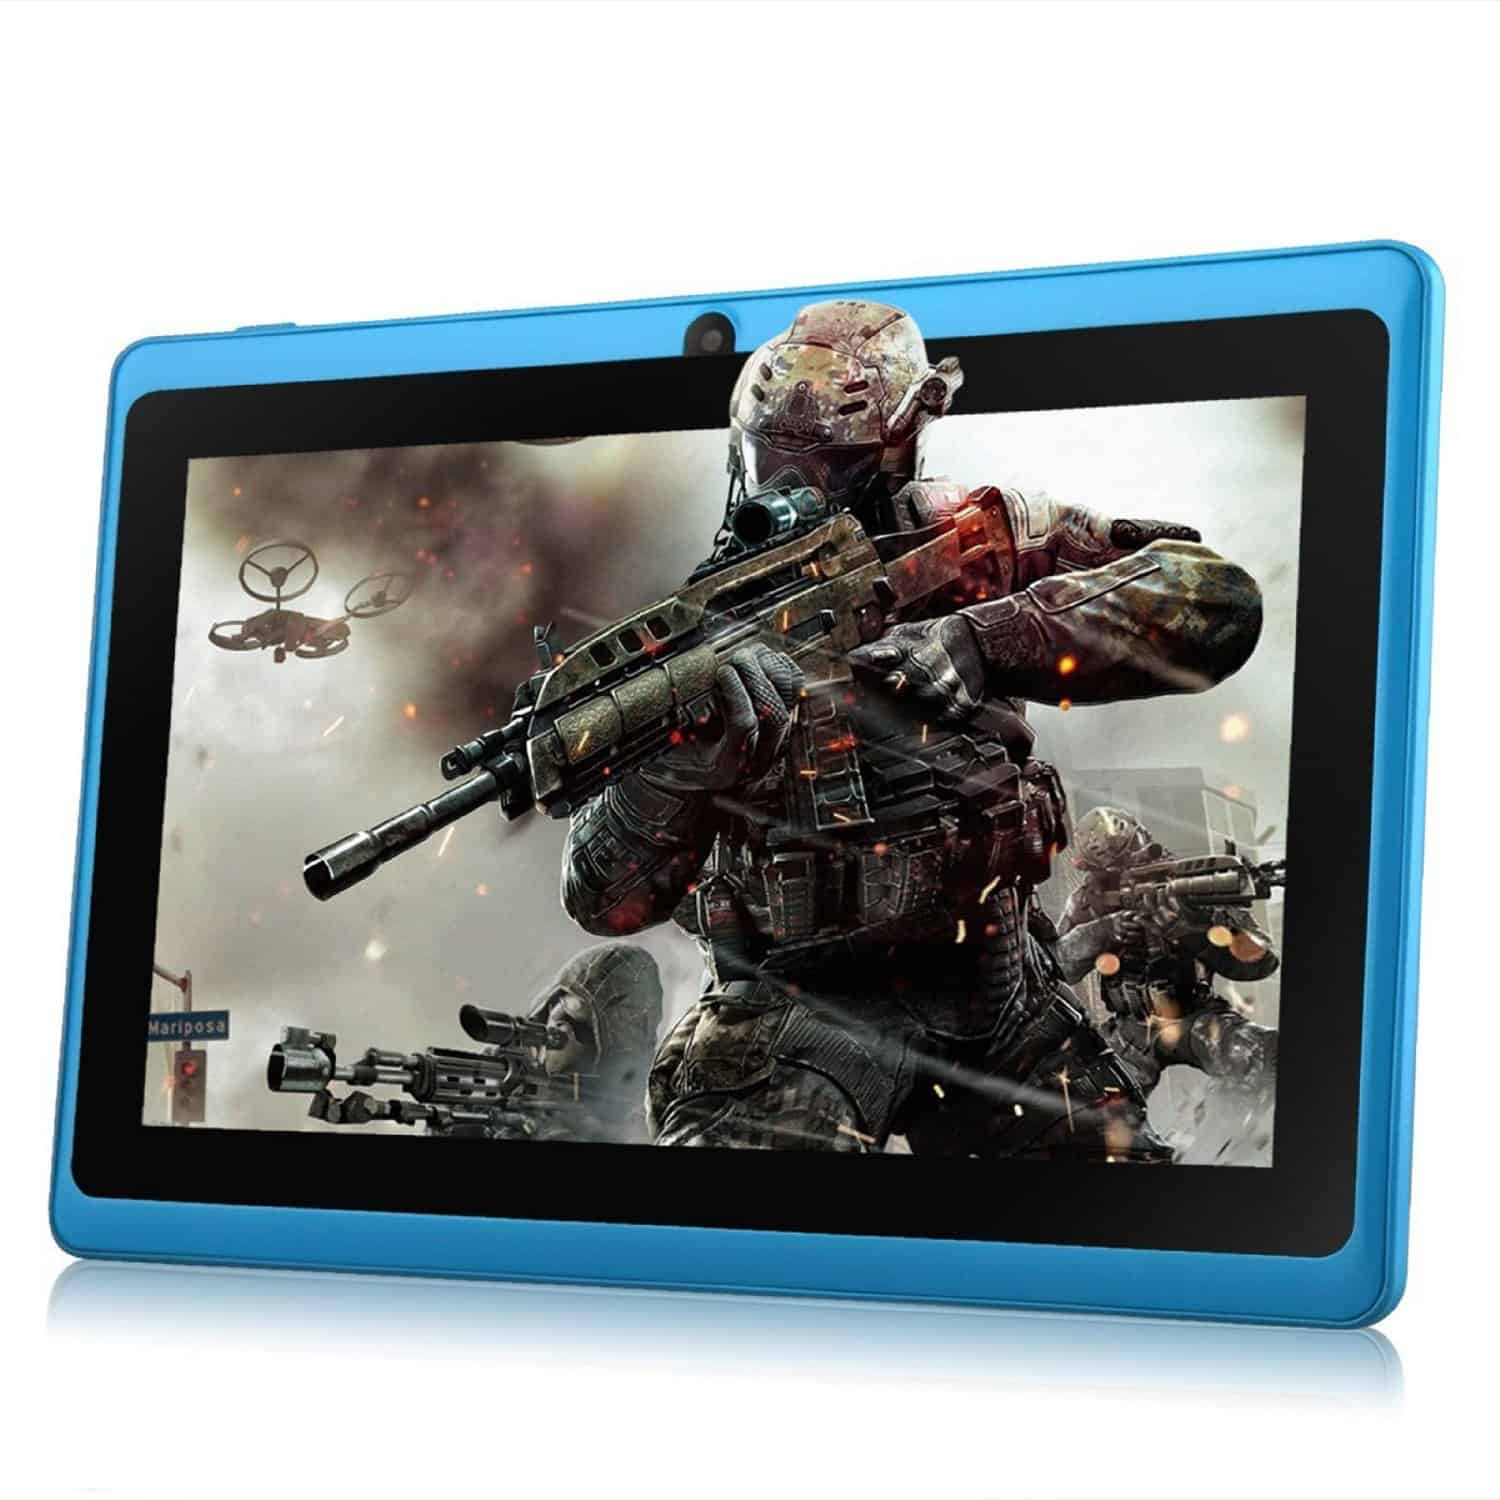 Arespark 7 Inch Android Tablet Review